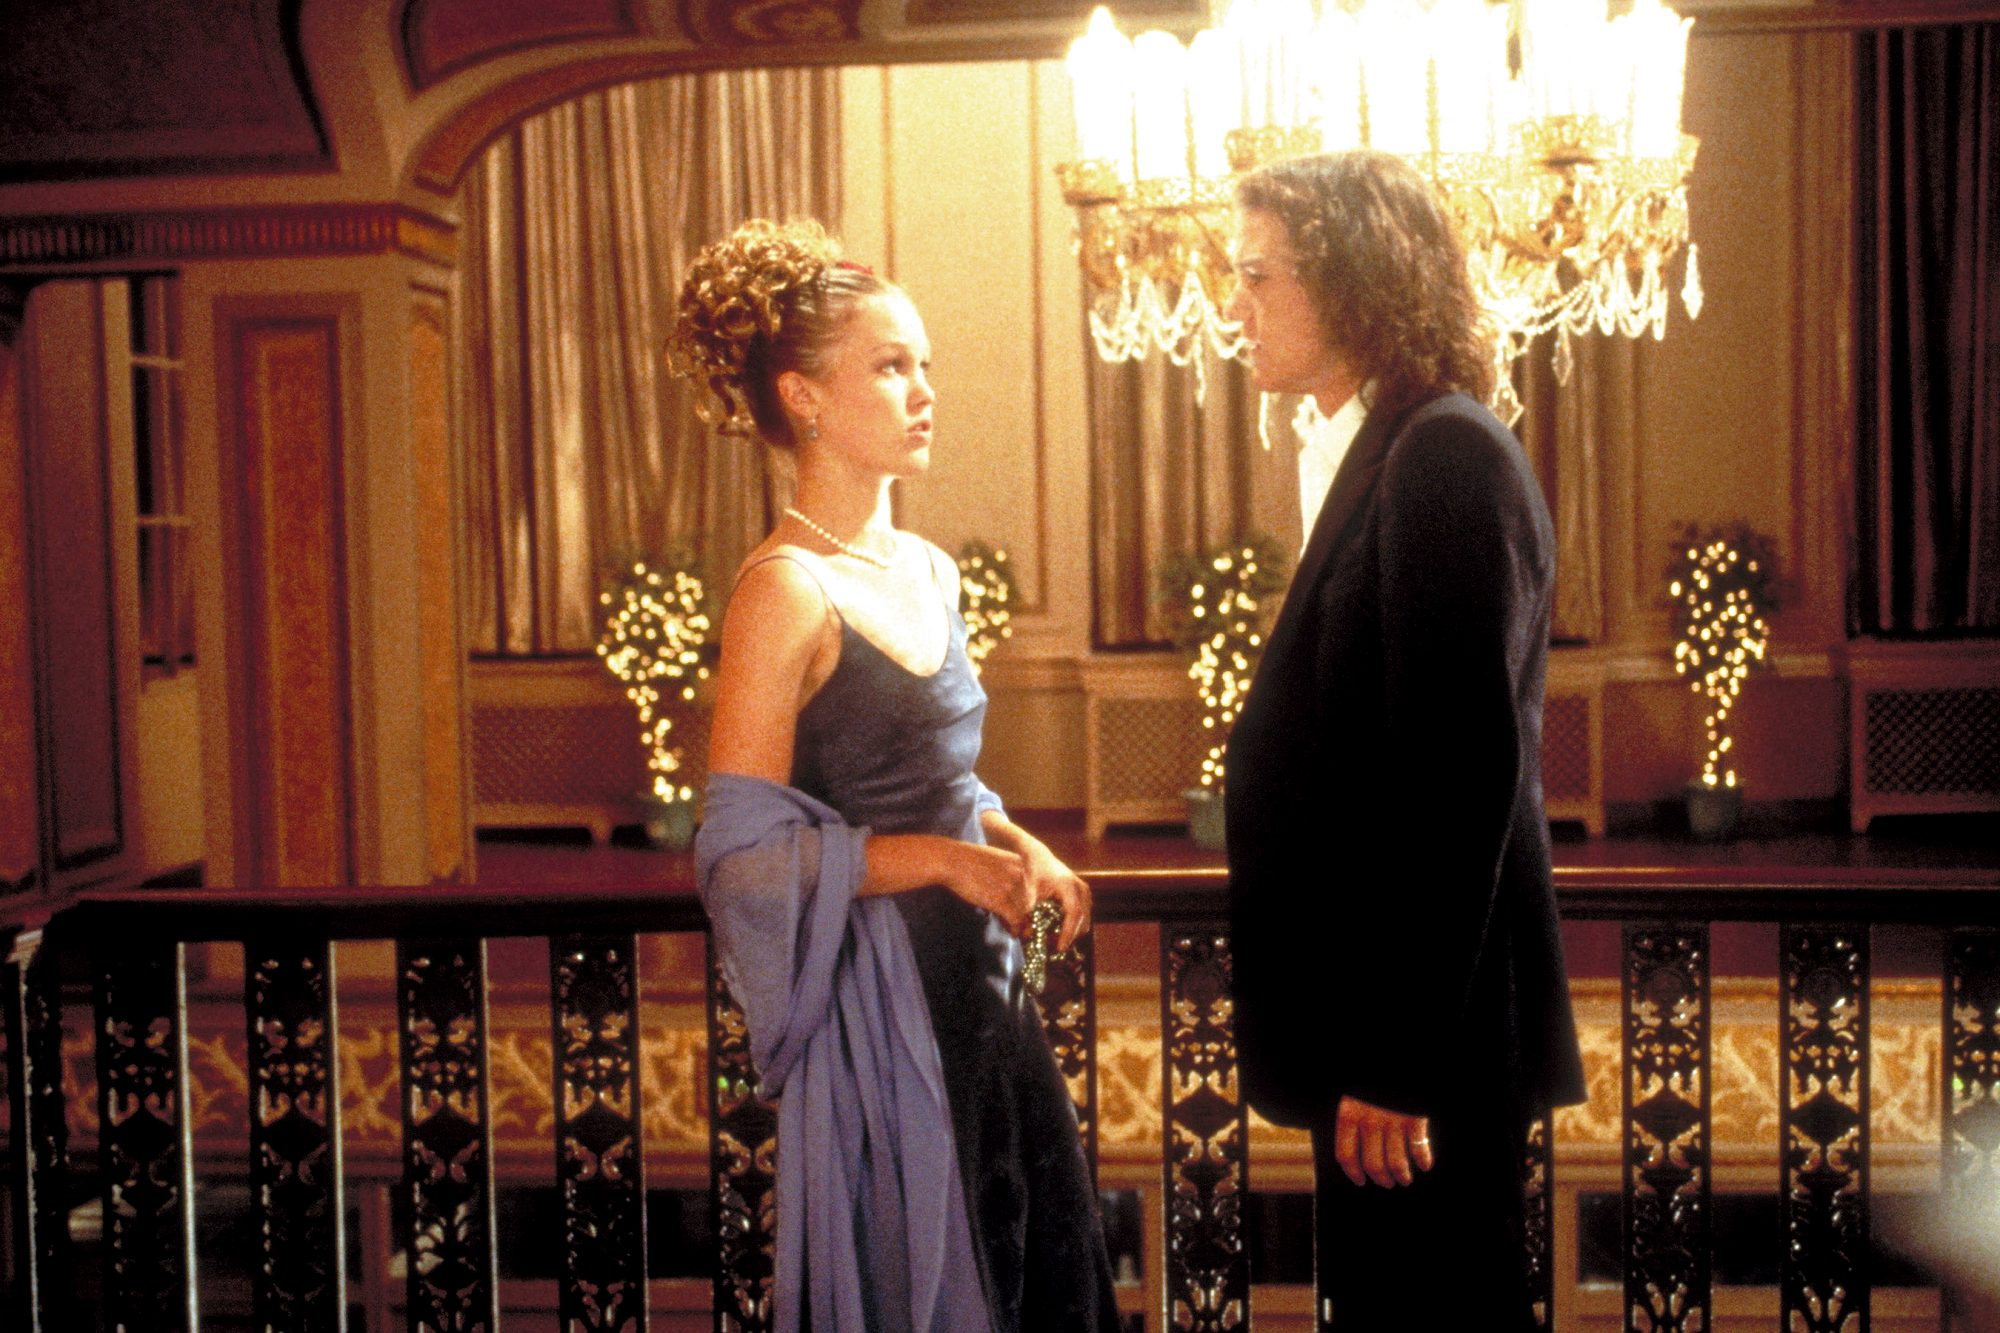 10 THINGS I HATE ABOUT YOU, from left: Julia Stiles, Heath Ledger, 1999, © Buena Vista/courtesy Ever